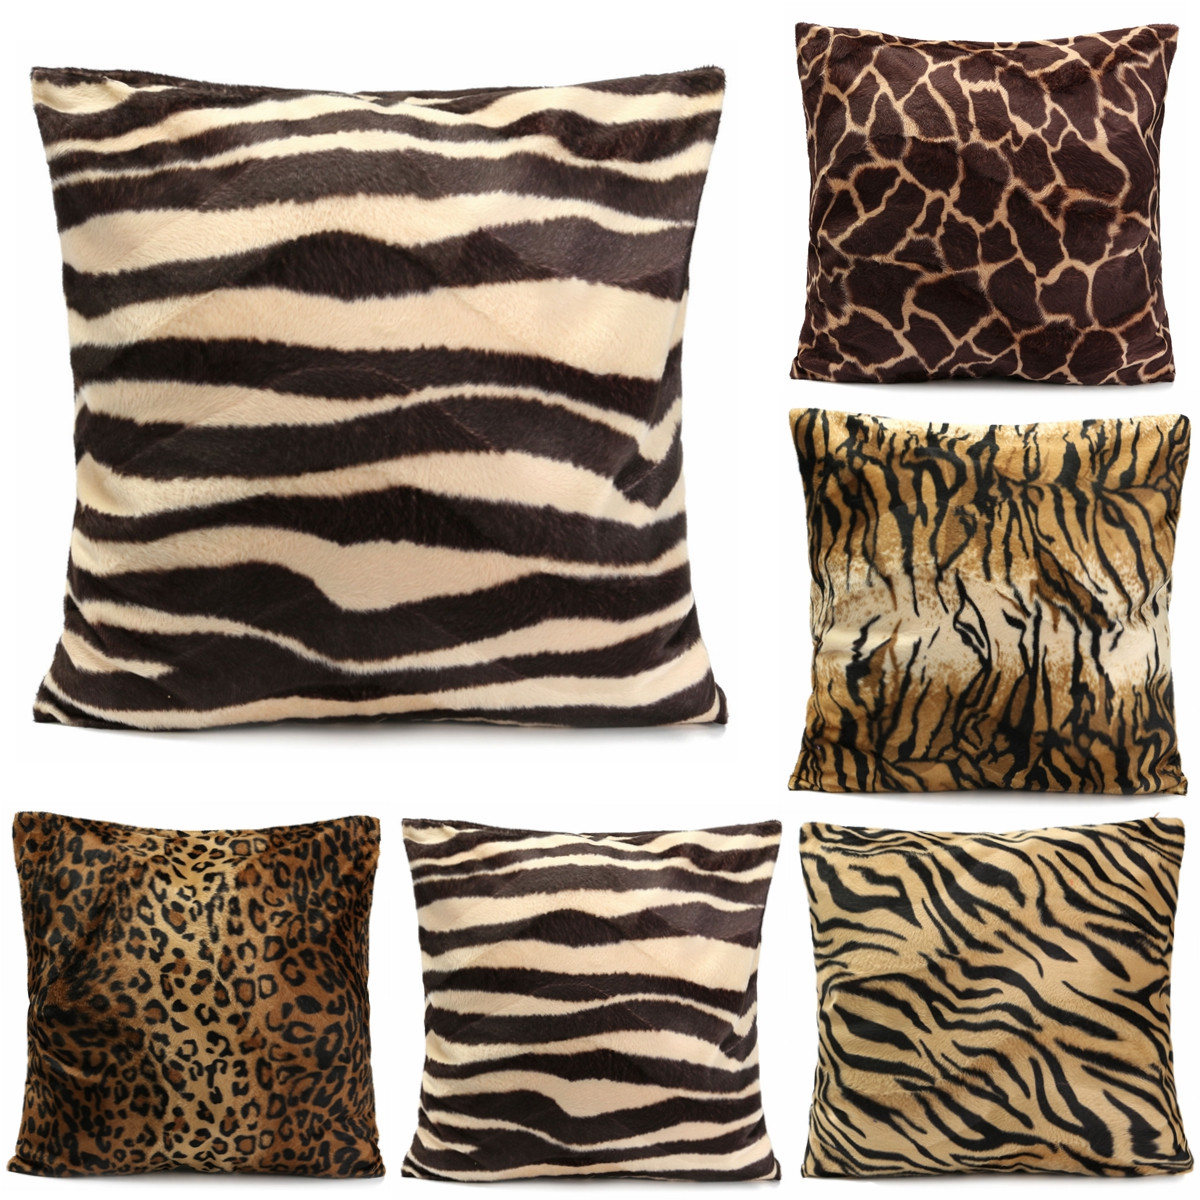 Fancy Throw Pillow Patterns : Animal Multi-Pattern Faux Fur Decorative Throw Pillow Cover Cushion Case Square Lazada Malaysia